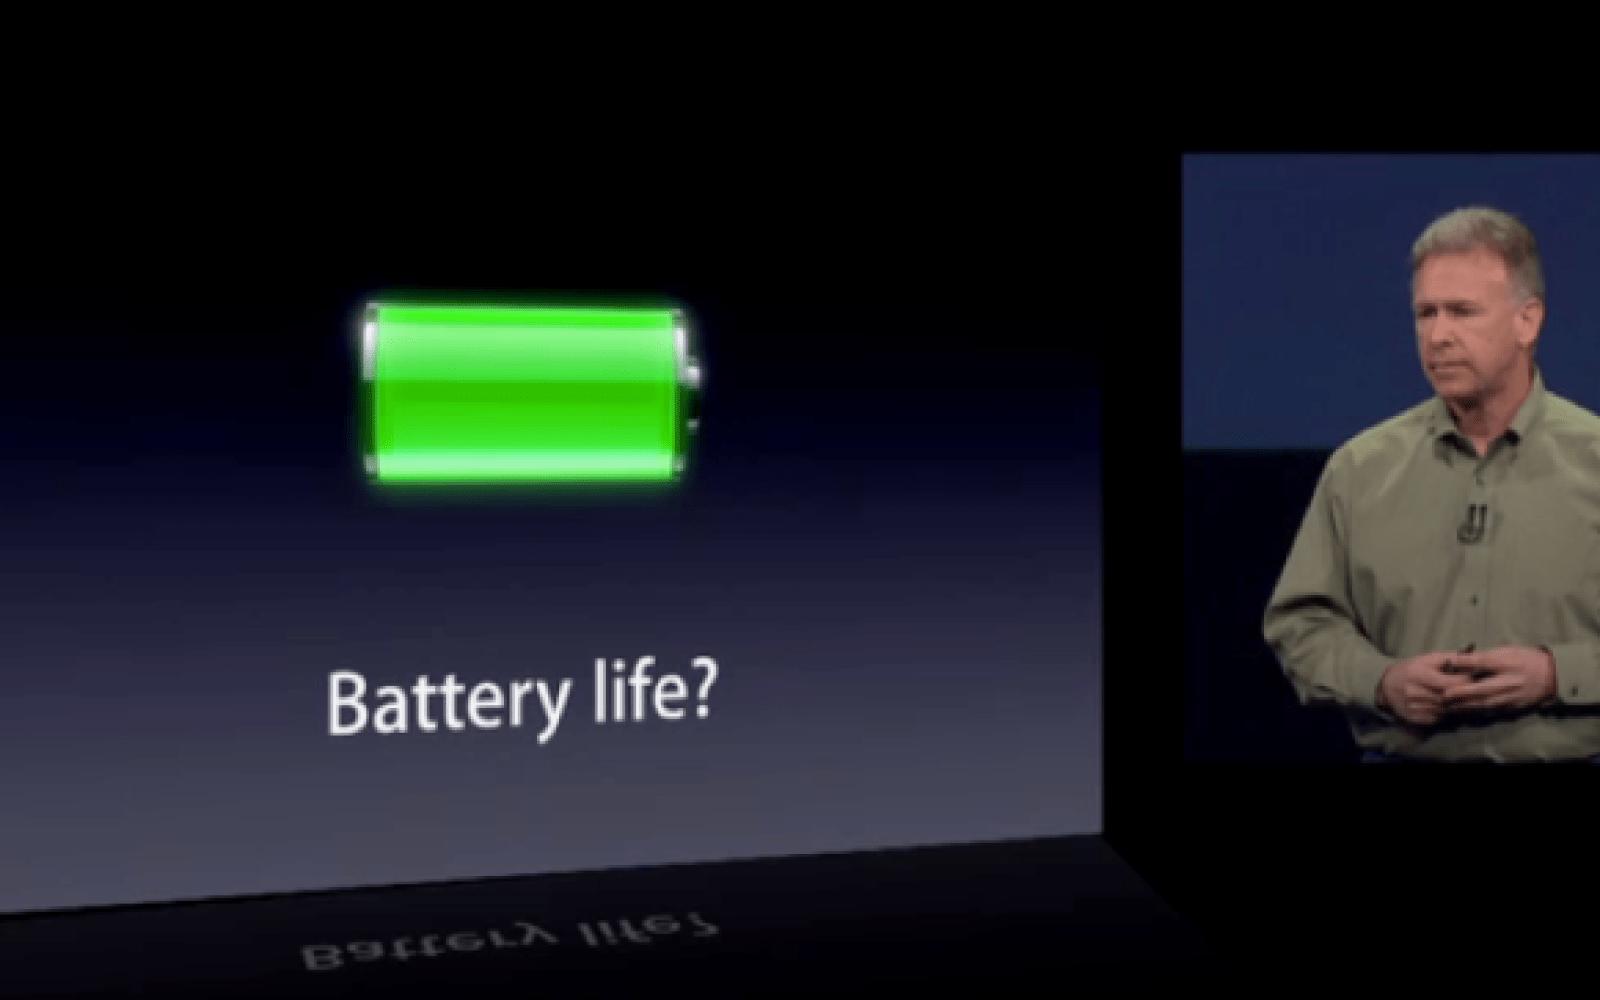 Results: 60% want Apple to thicken the next iPhone to improve battery life